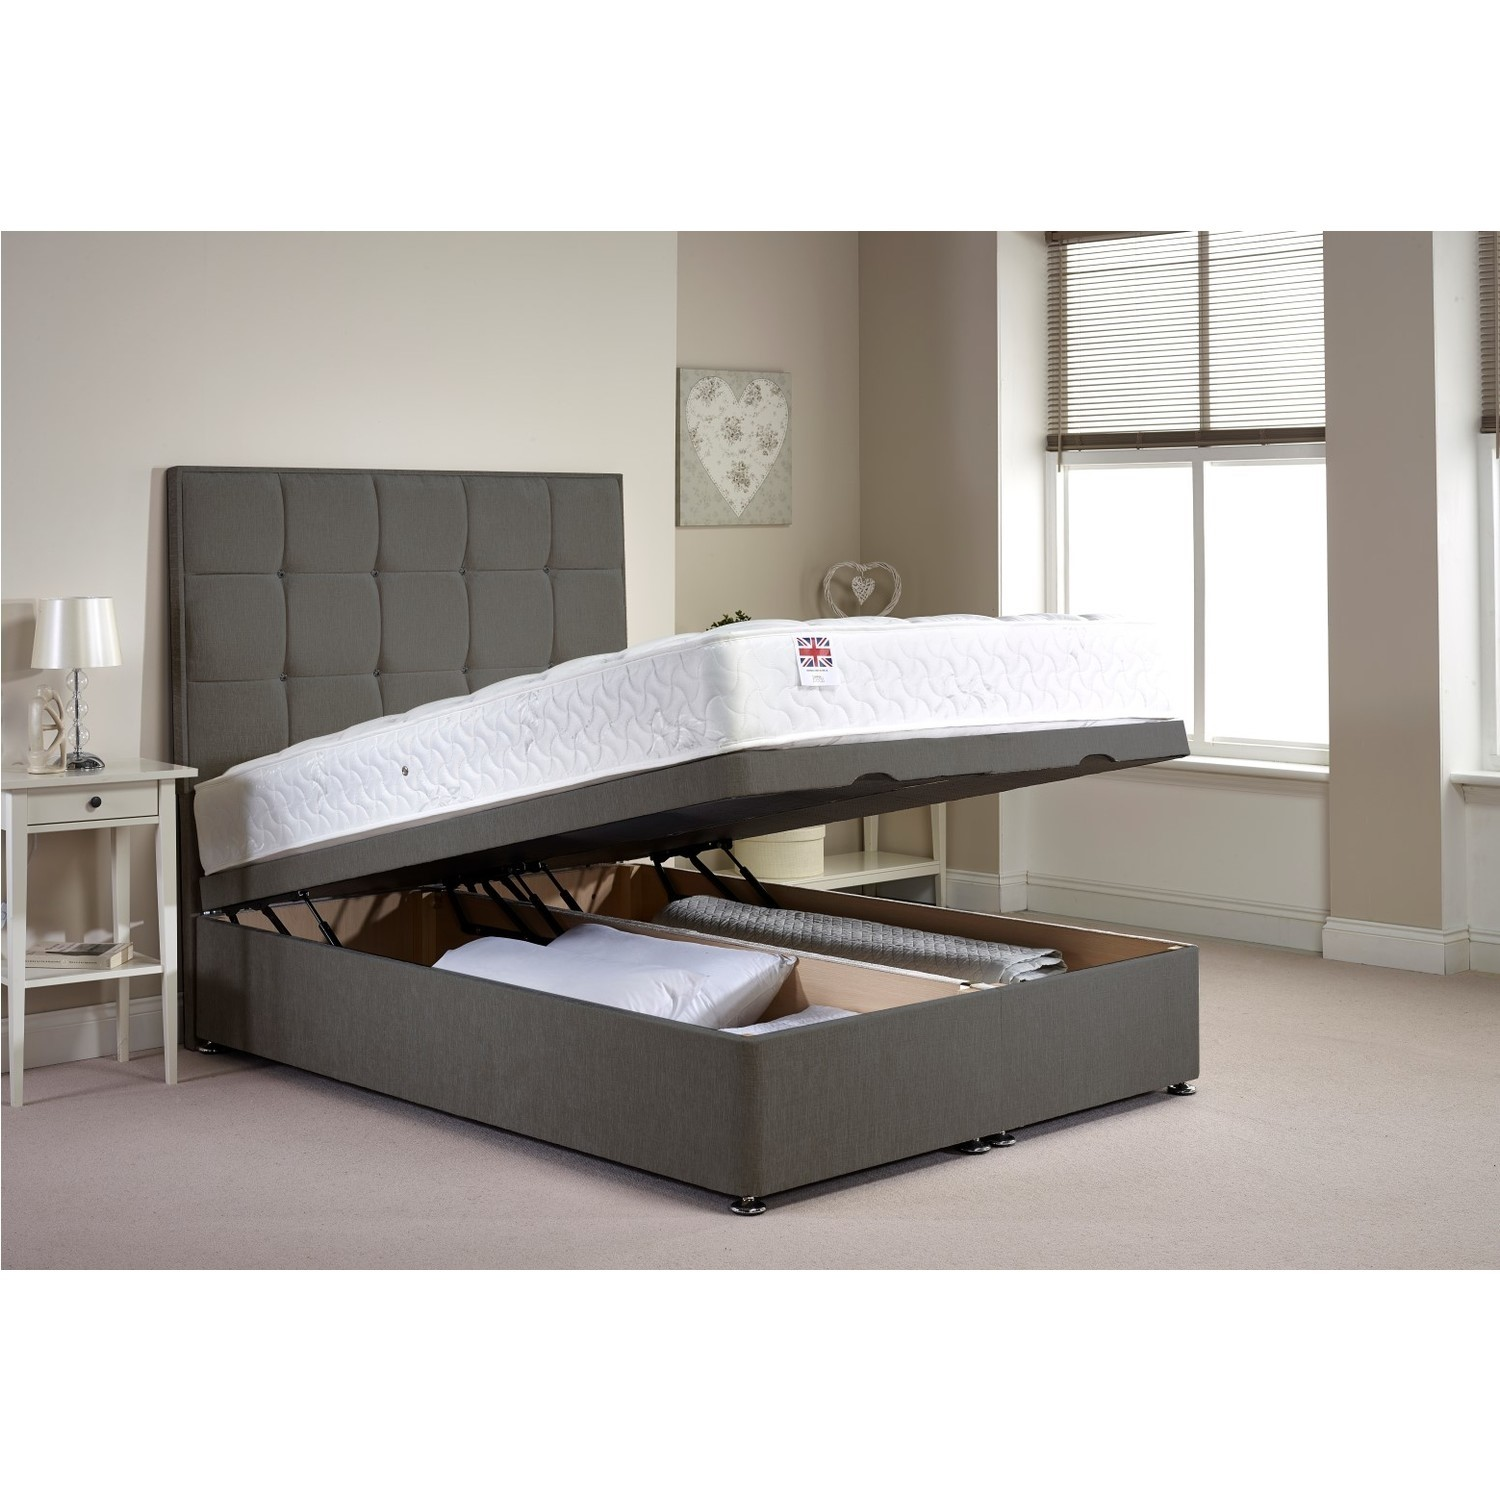 Futuristic King Size Bed Frame Decor